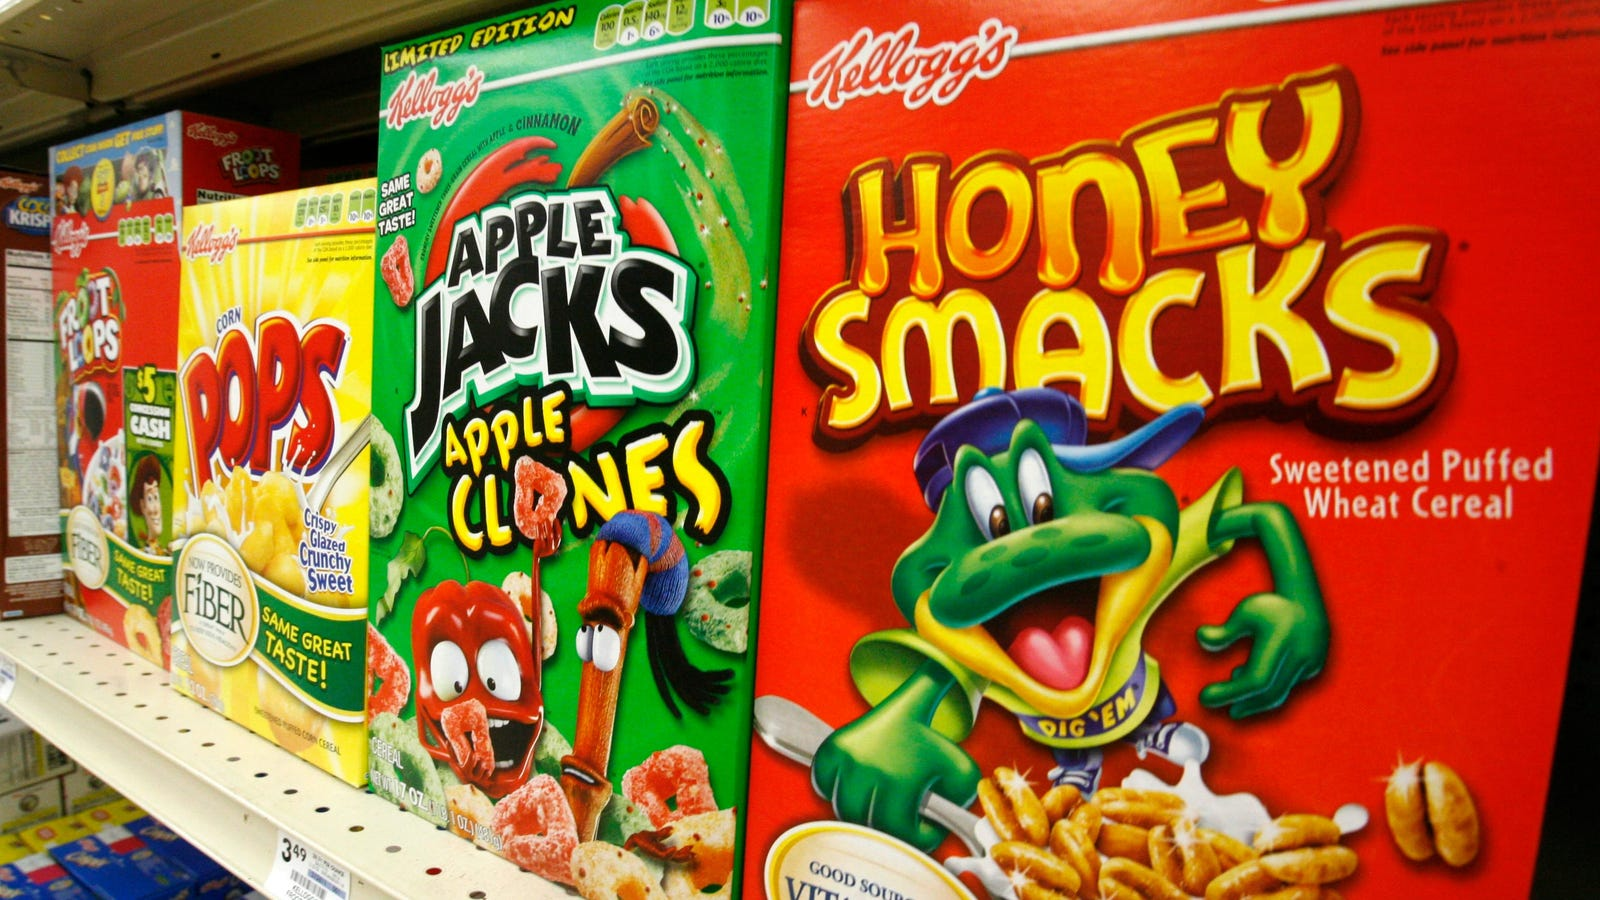 Honey Smacks Linked to Salmonella Outbreak Still on Store Shelves, FDA Says